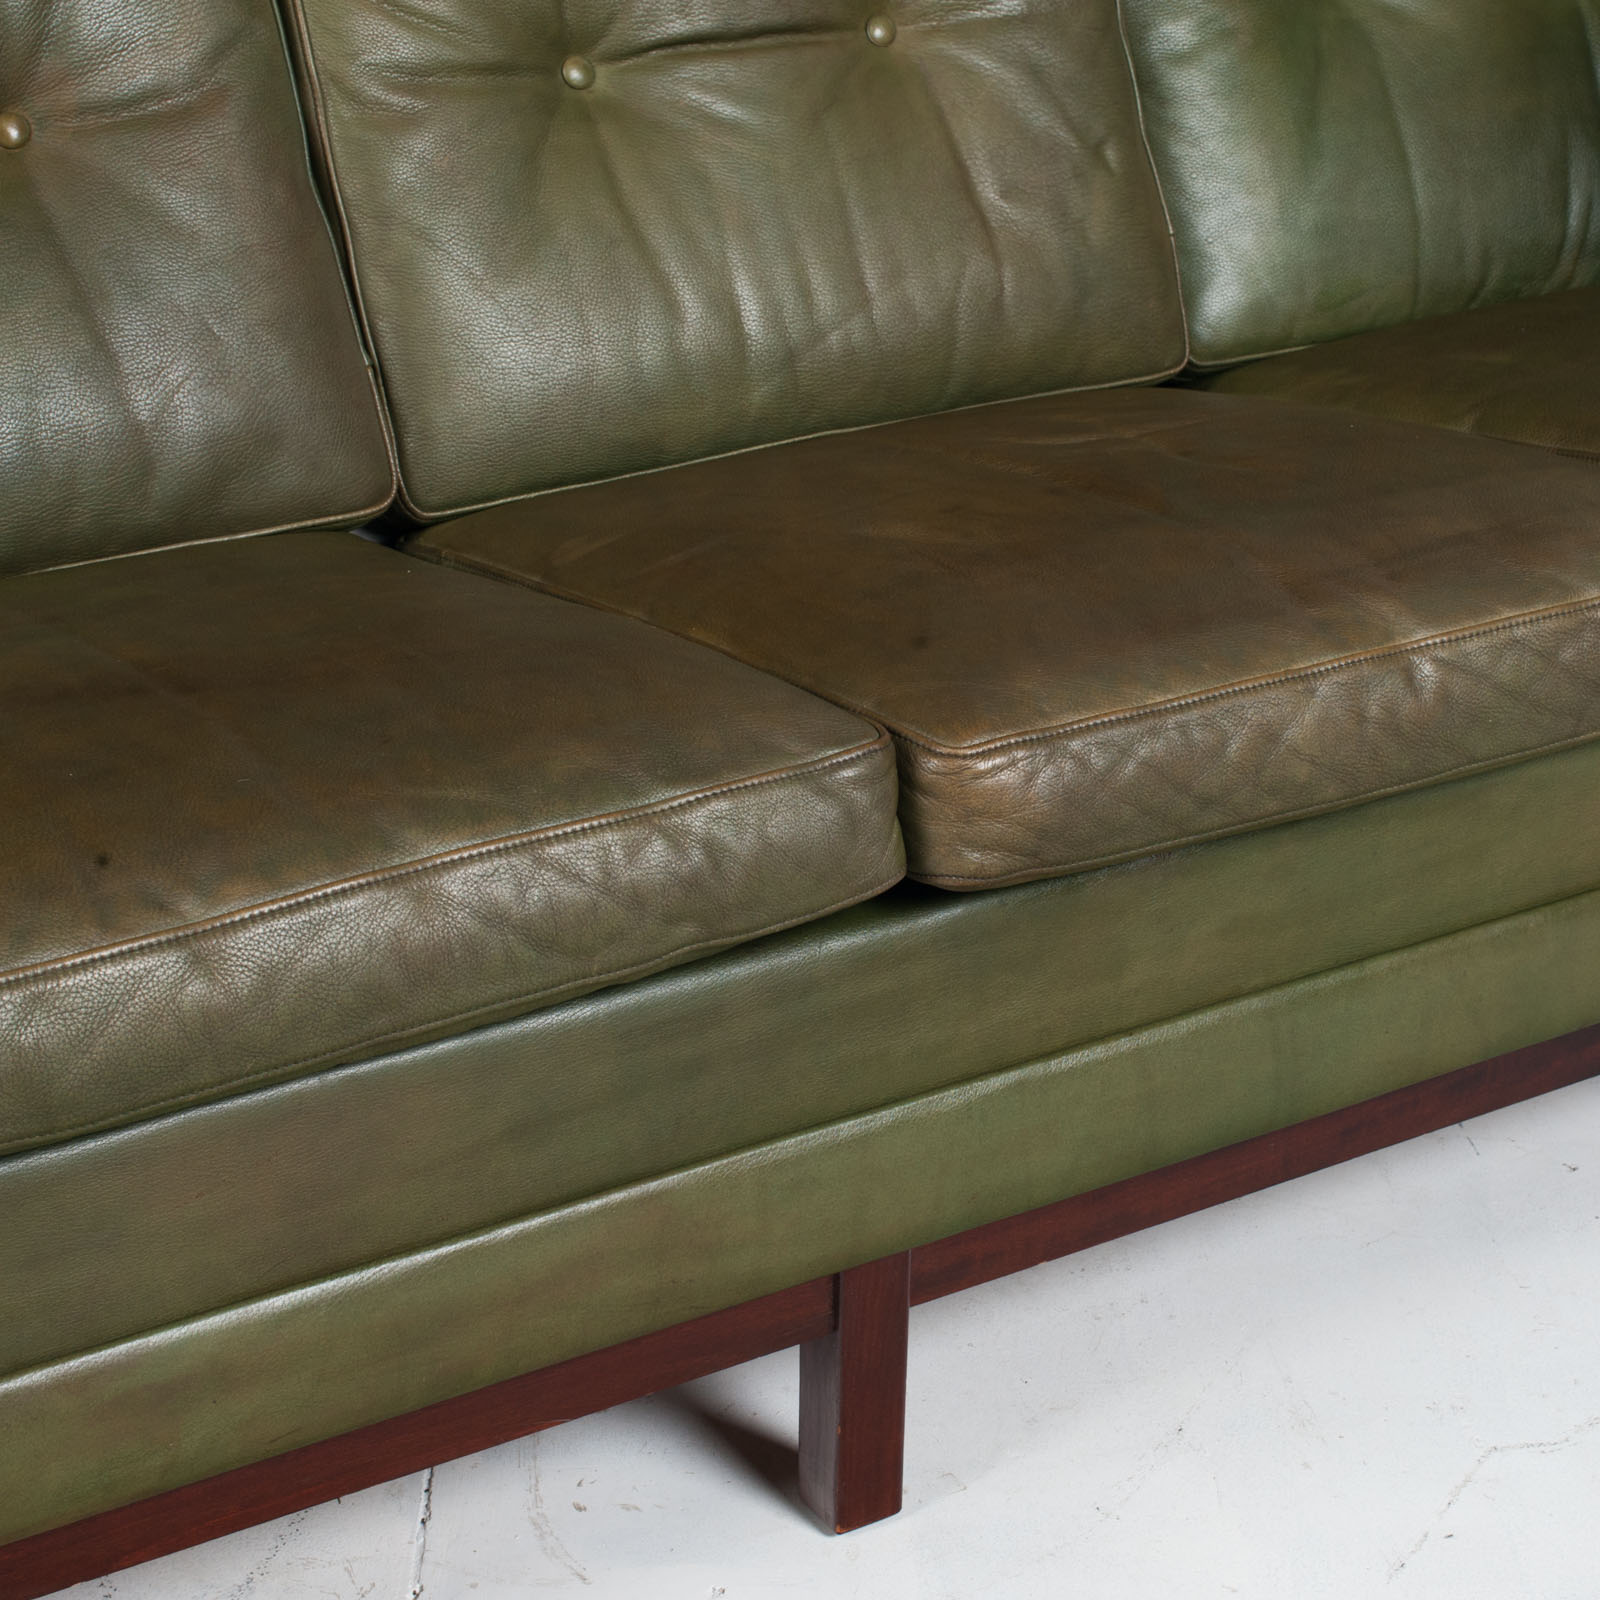 4 Seat Sofa In Olive Leather 1960s Denmark 010